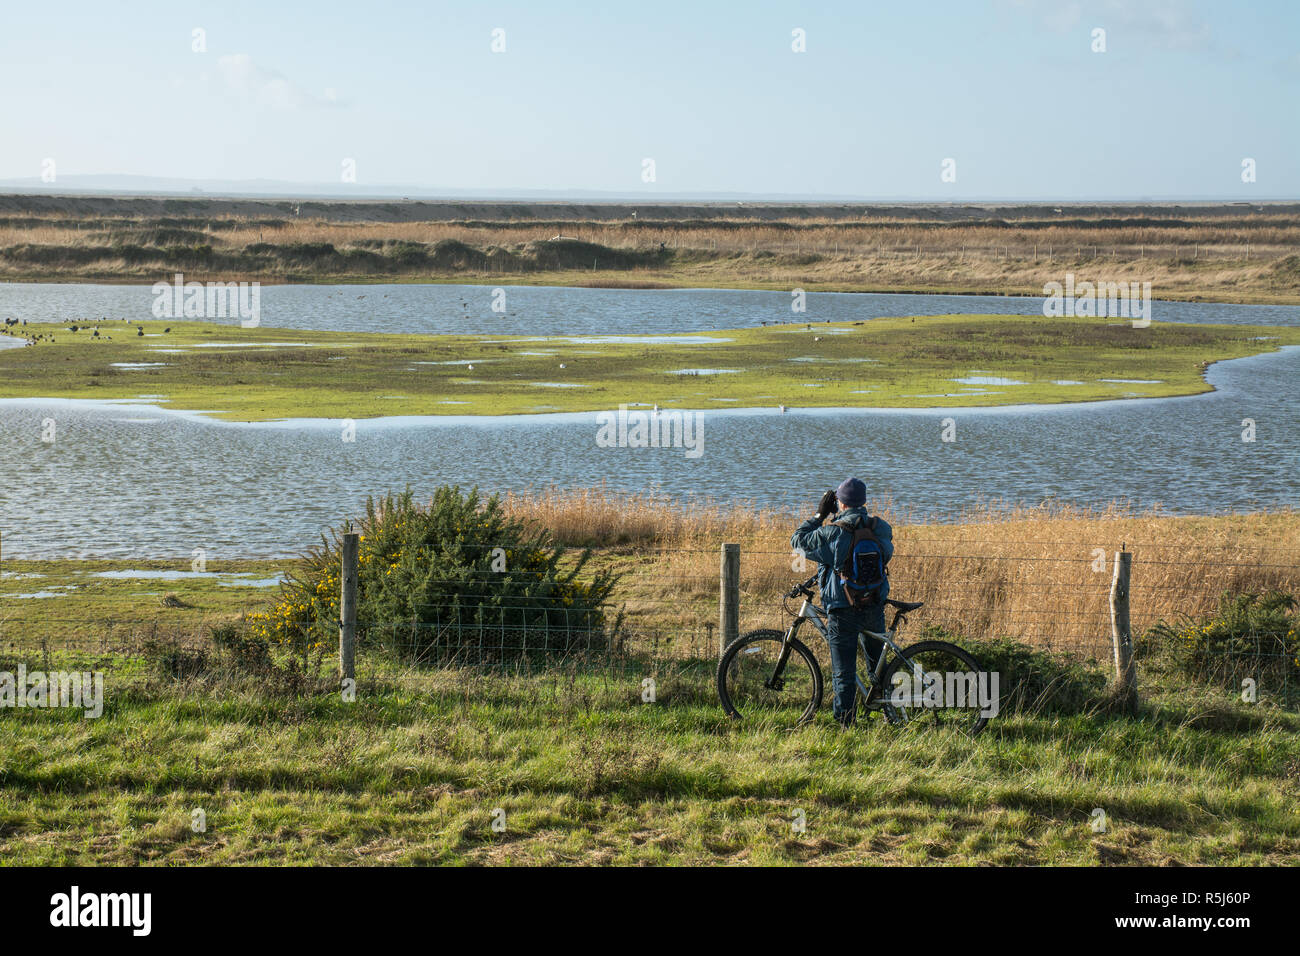 rspb-medmerry-nature-reserve-by-the-coast-west-sussex-uk-birdwatcher-on-a-bicycle-looking-at-birds-on-the-stilt-pools-through-binoculars-R5J60P.jpg